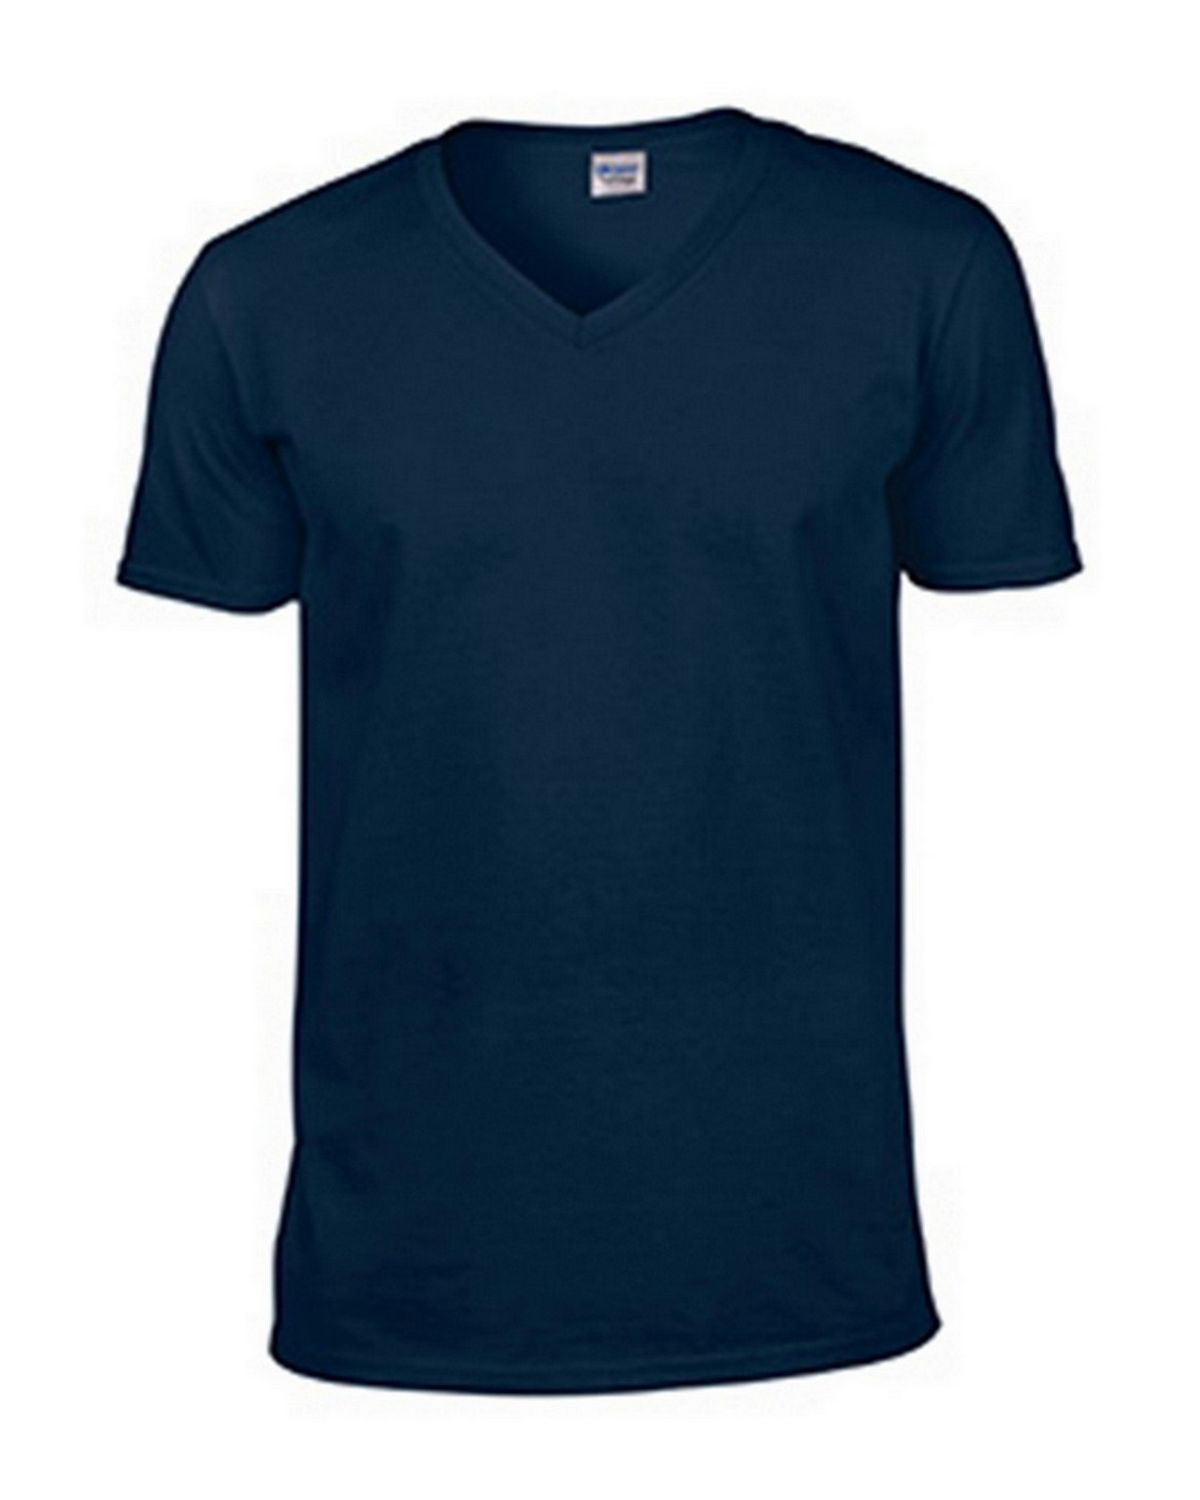 Gildan G64V00 Softstyle Adult V-Neck Tee - Heather Navy - 3X G64V00